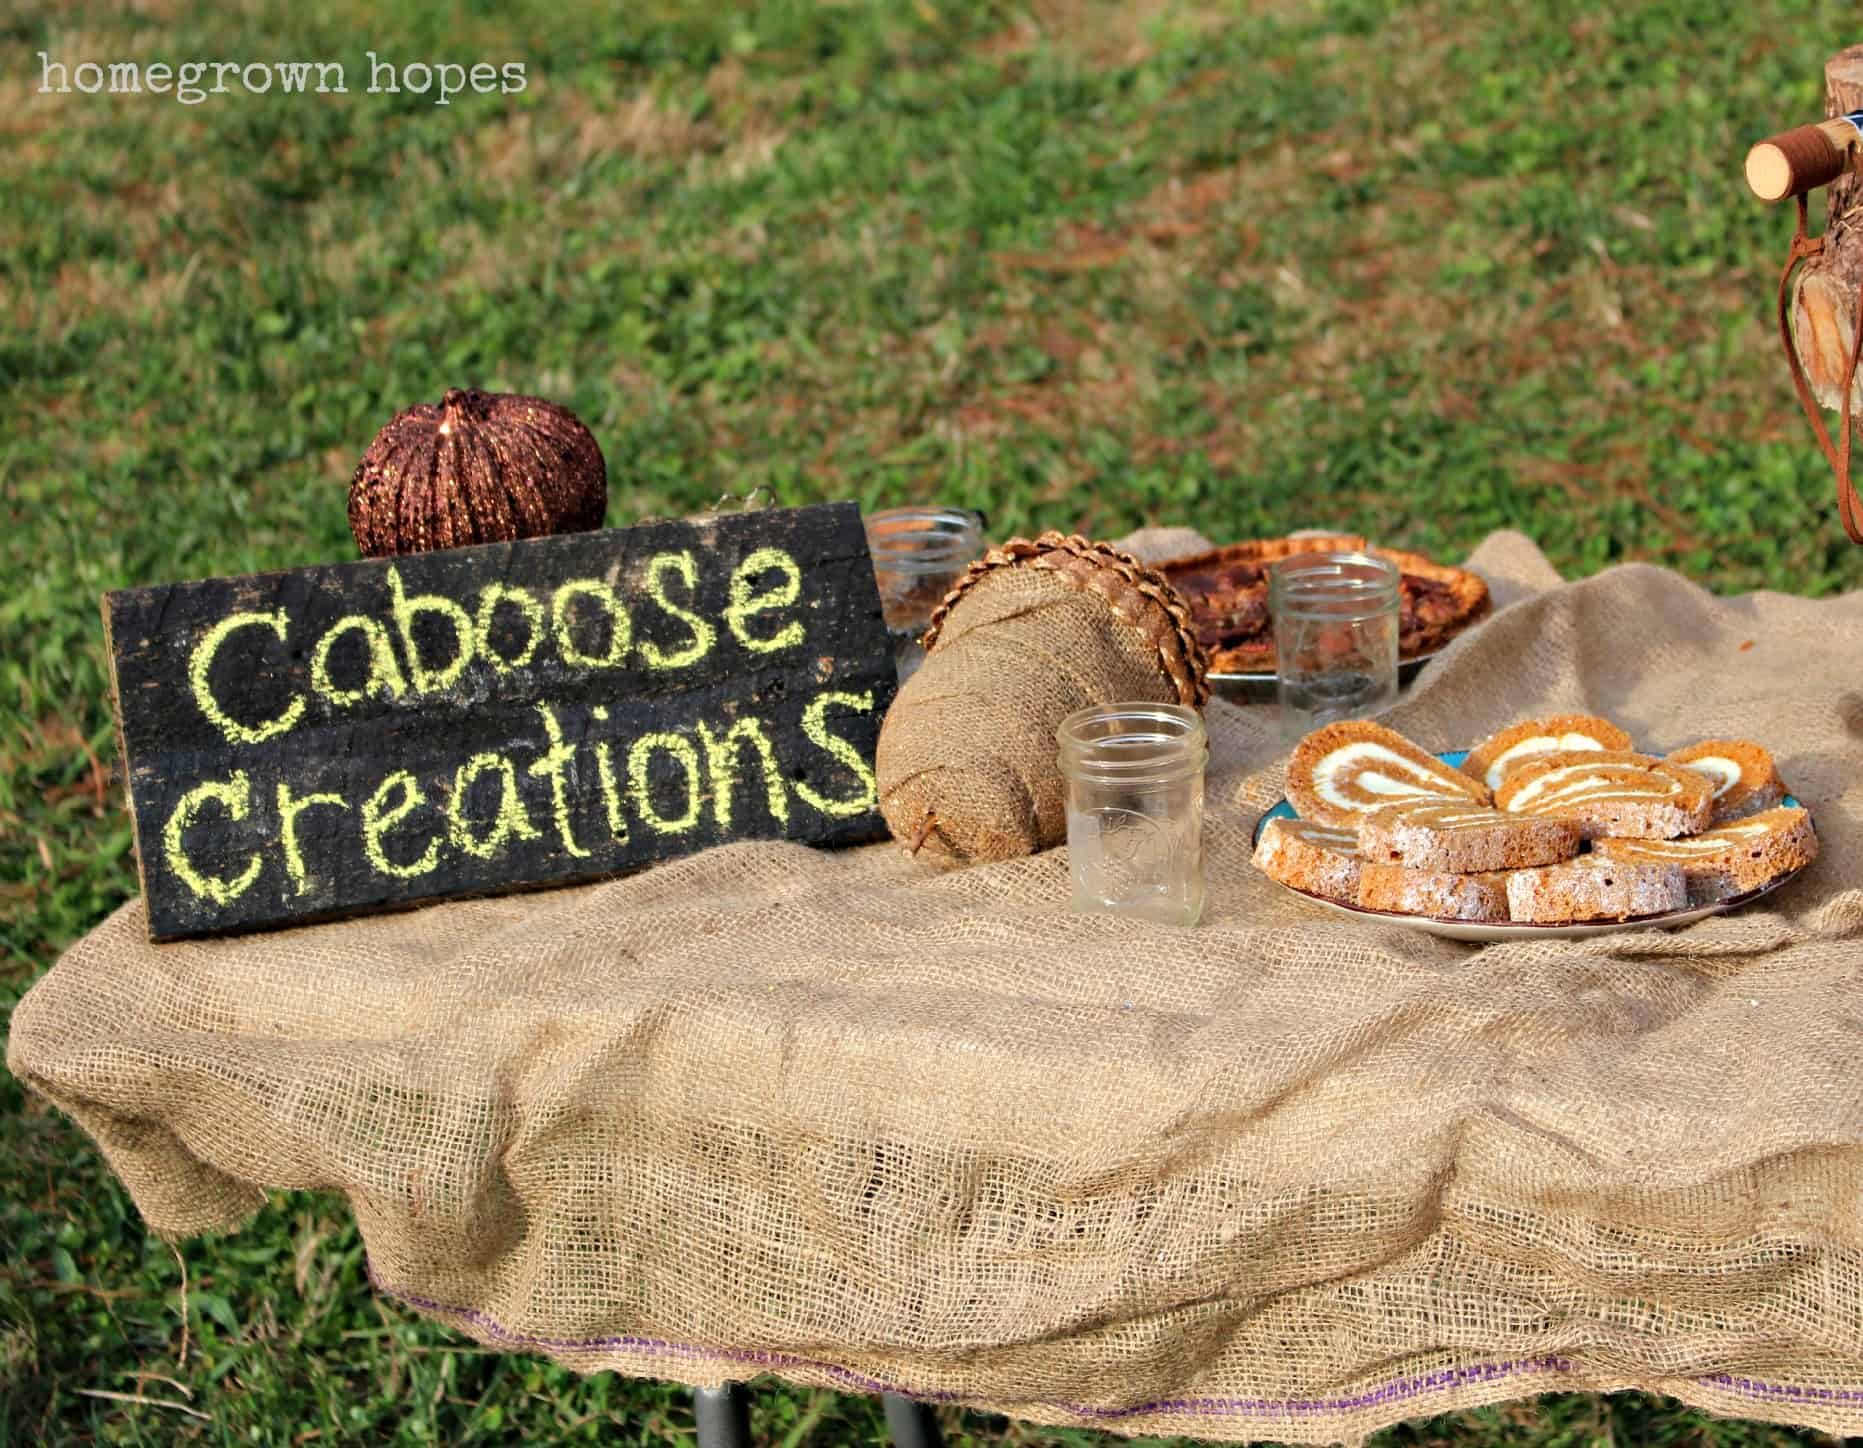 caboose creations